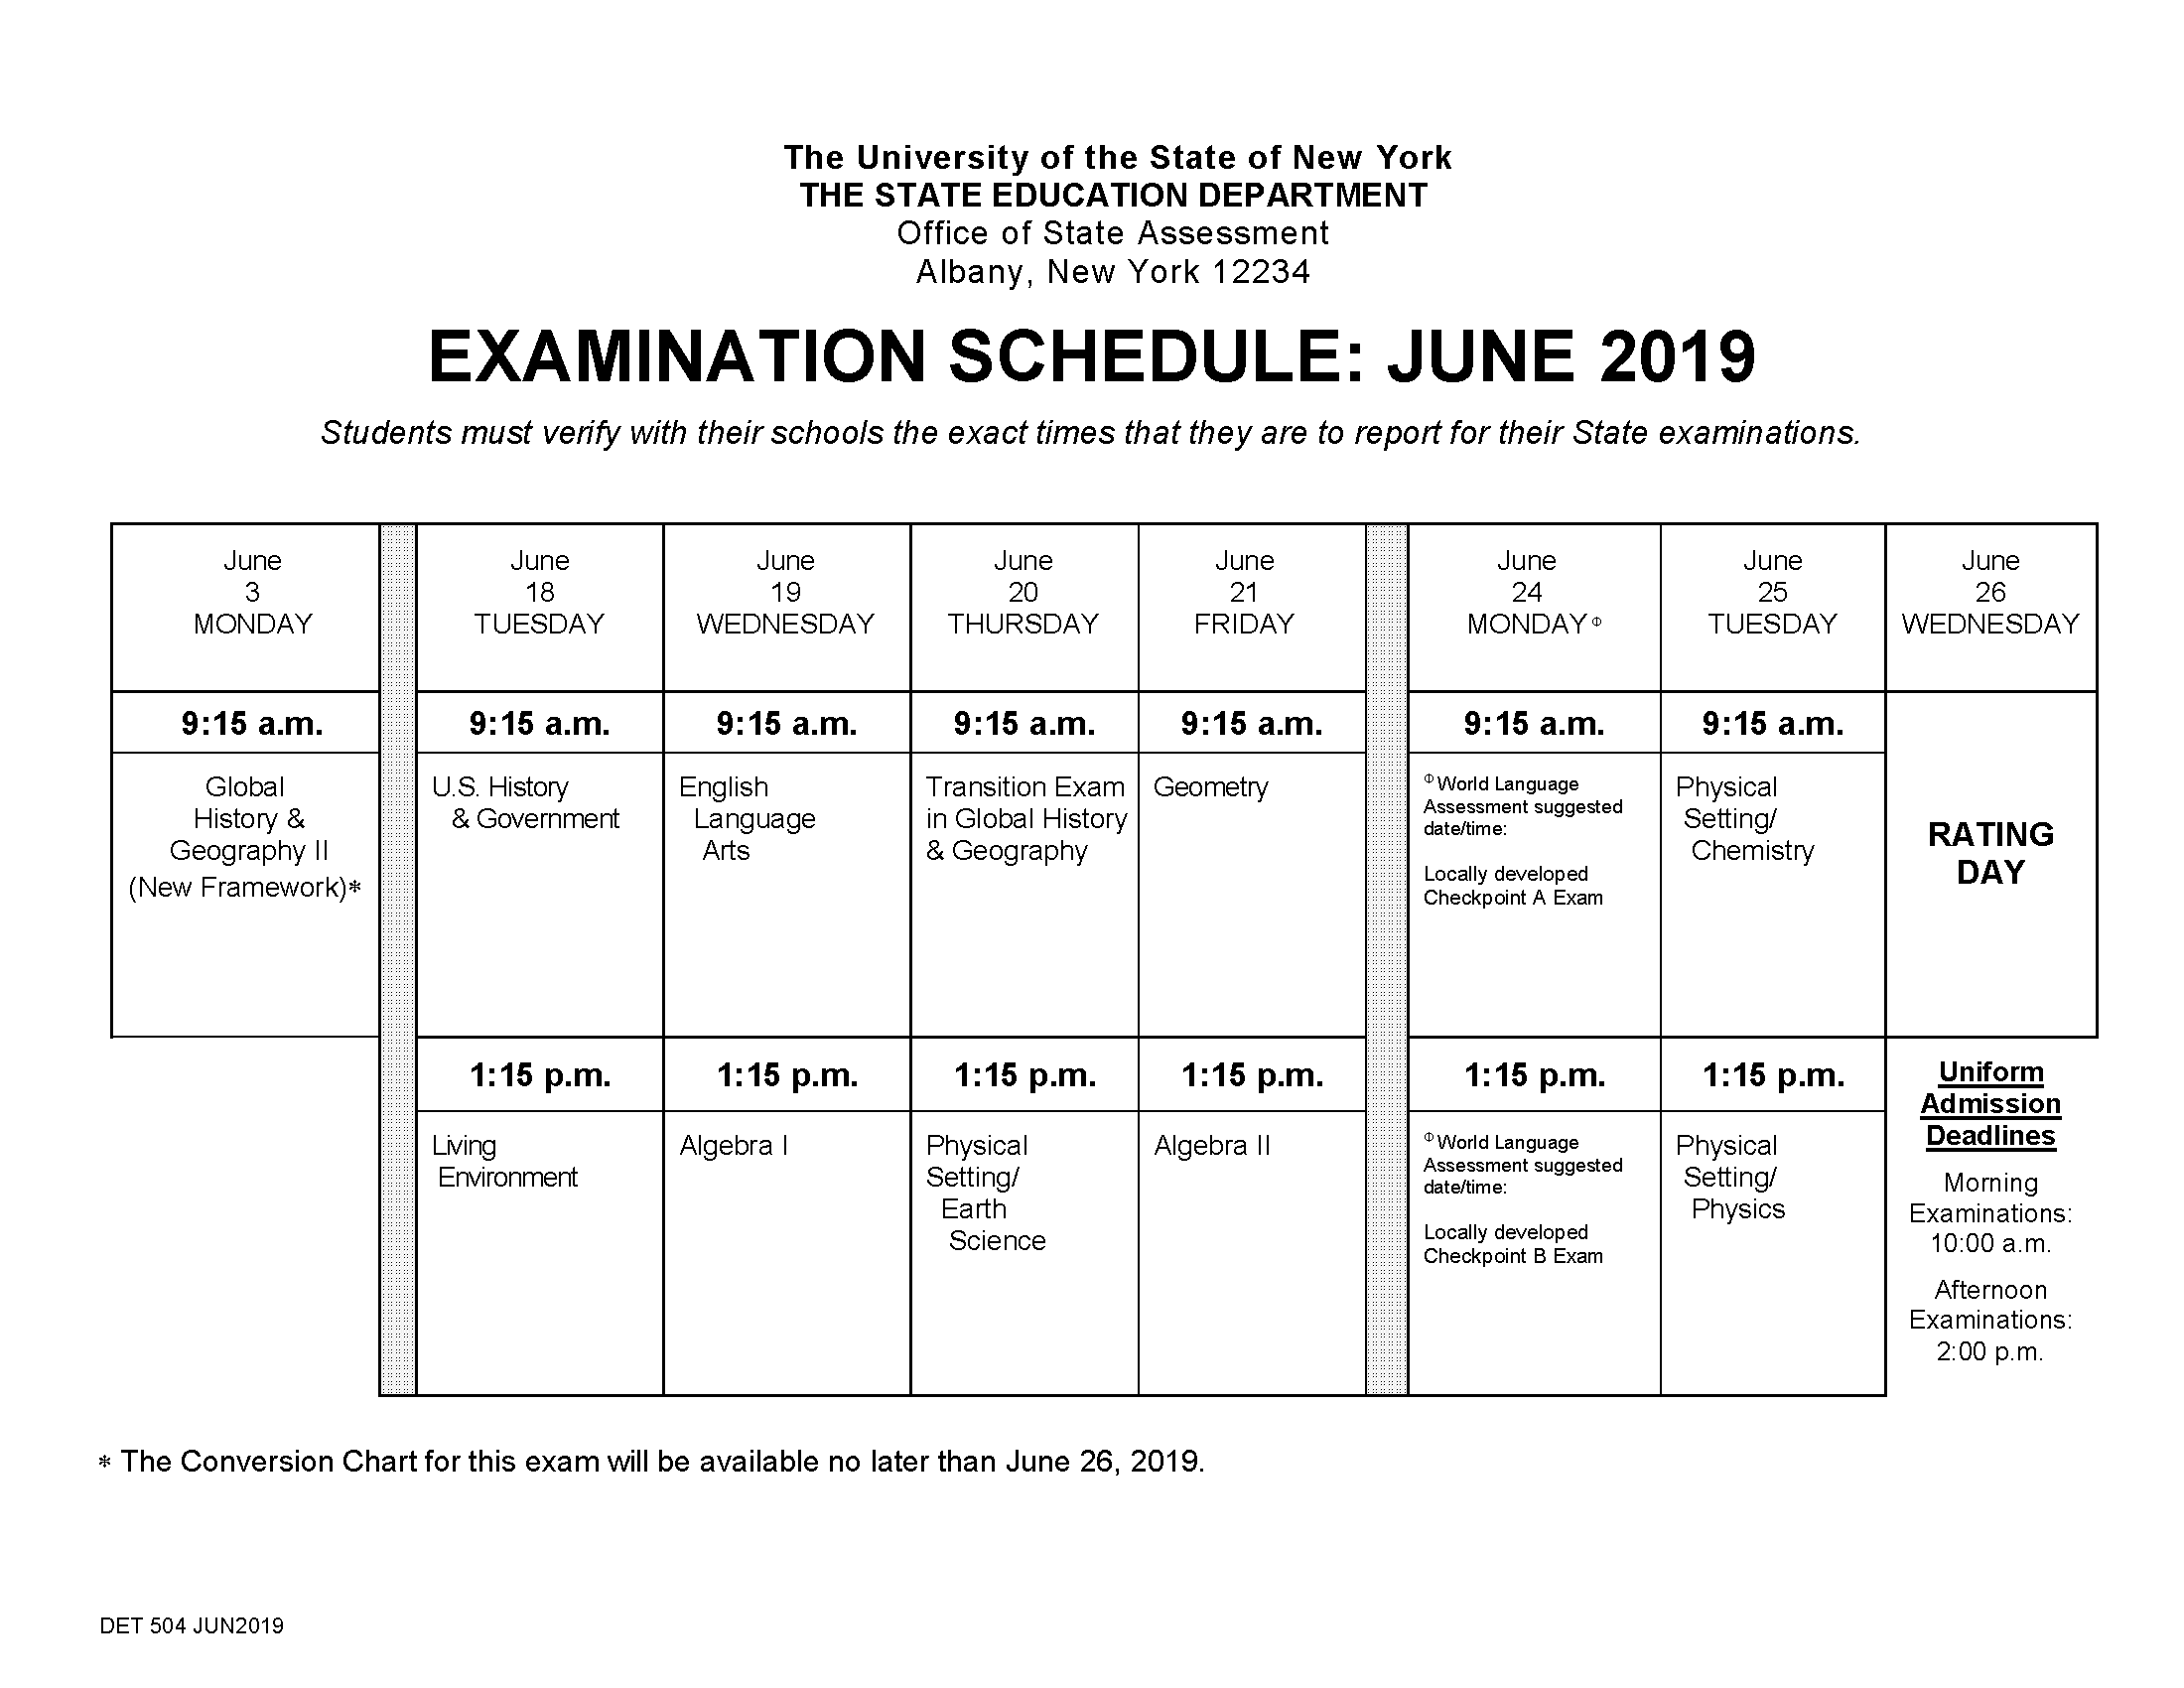 Regents exam schedule for June 2019